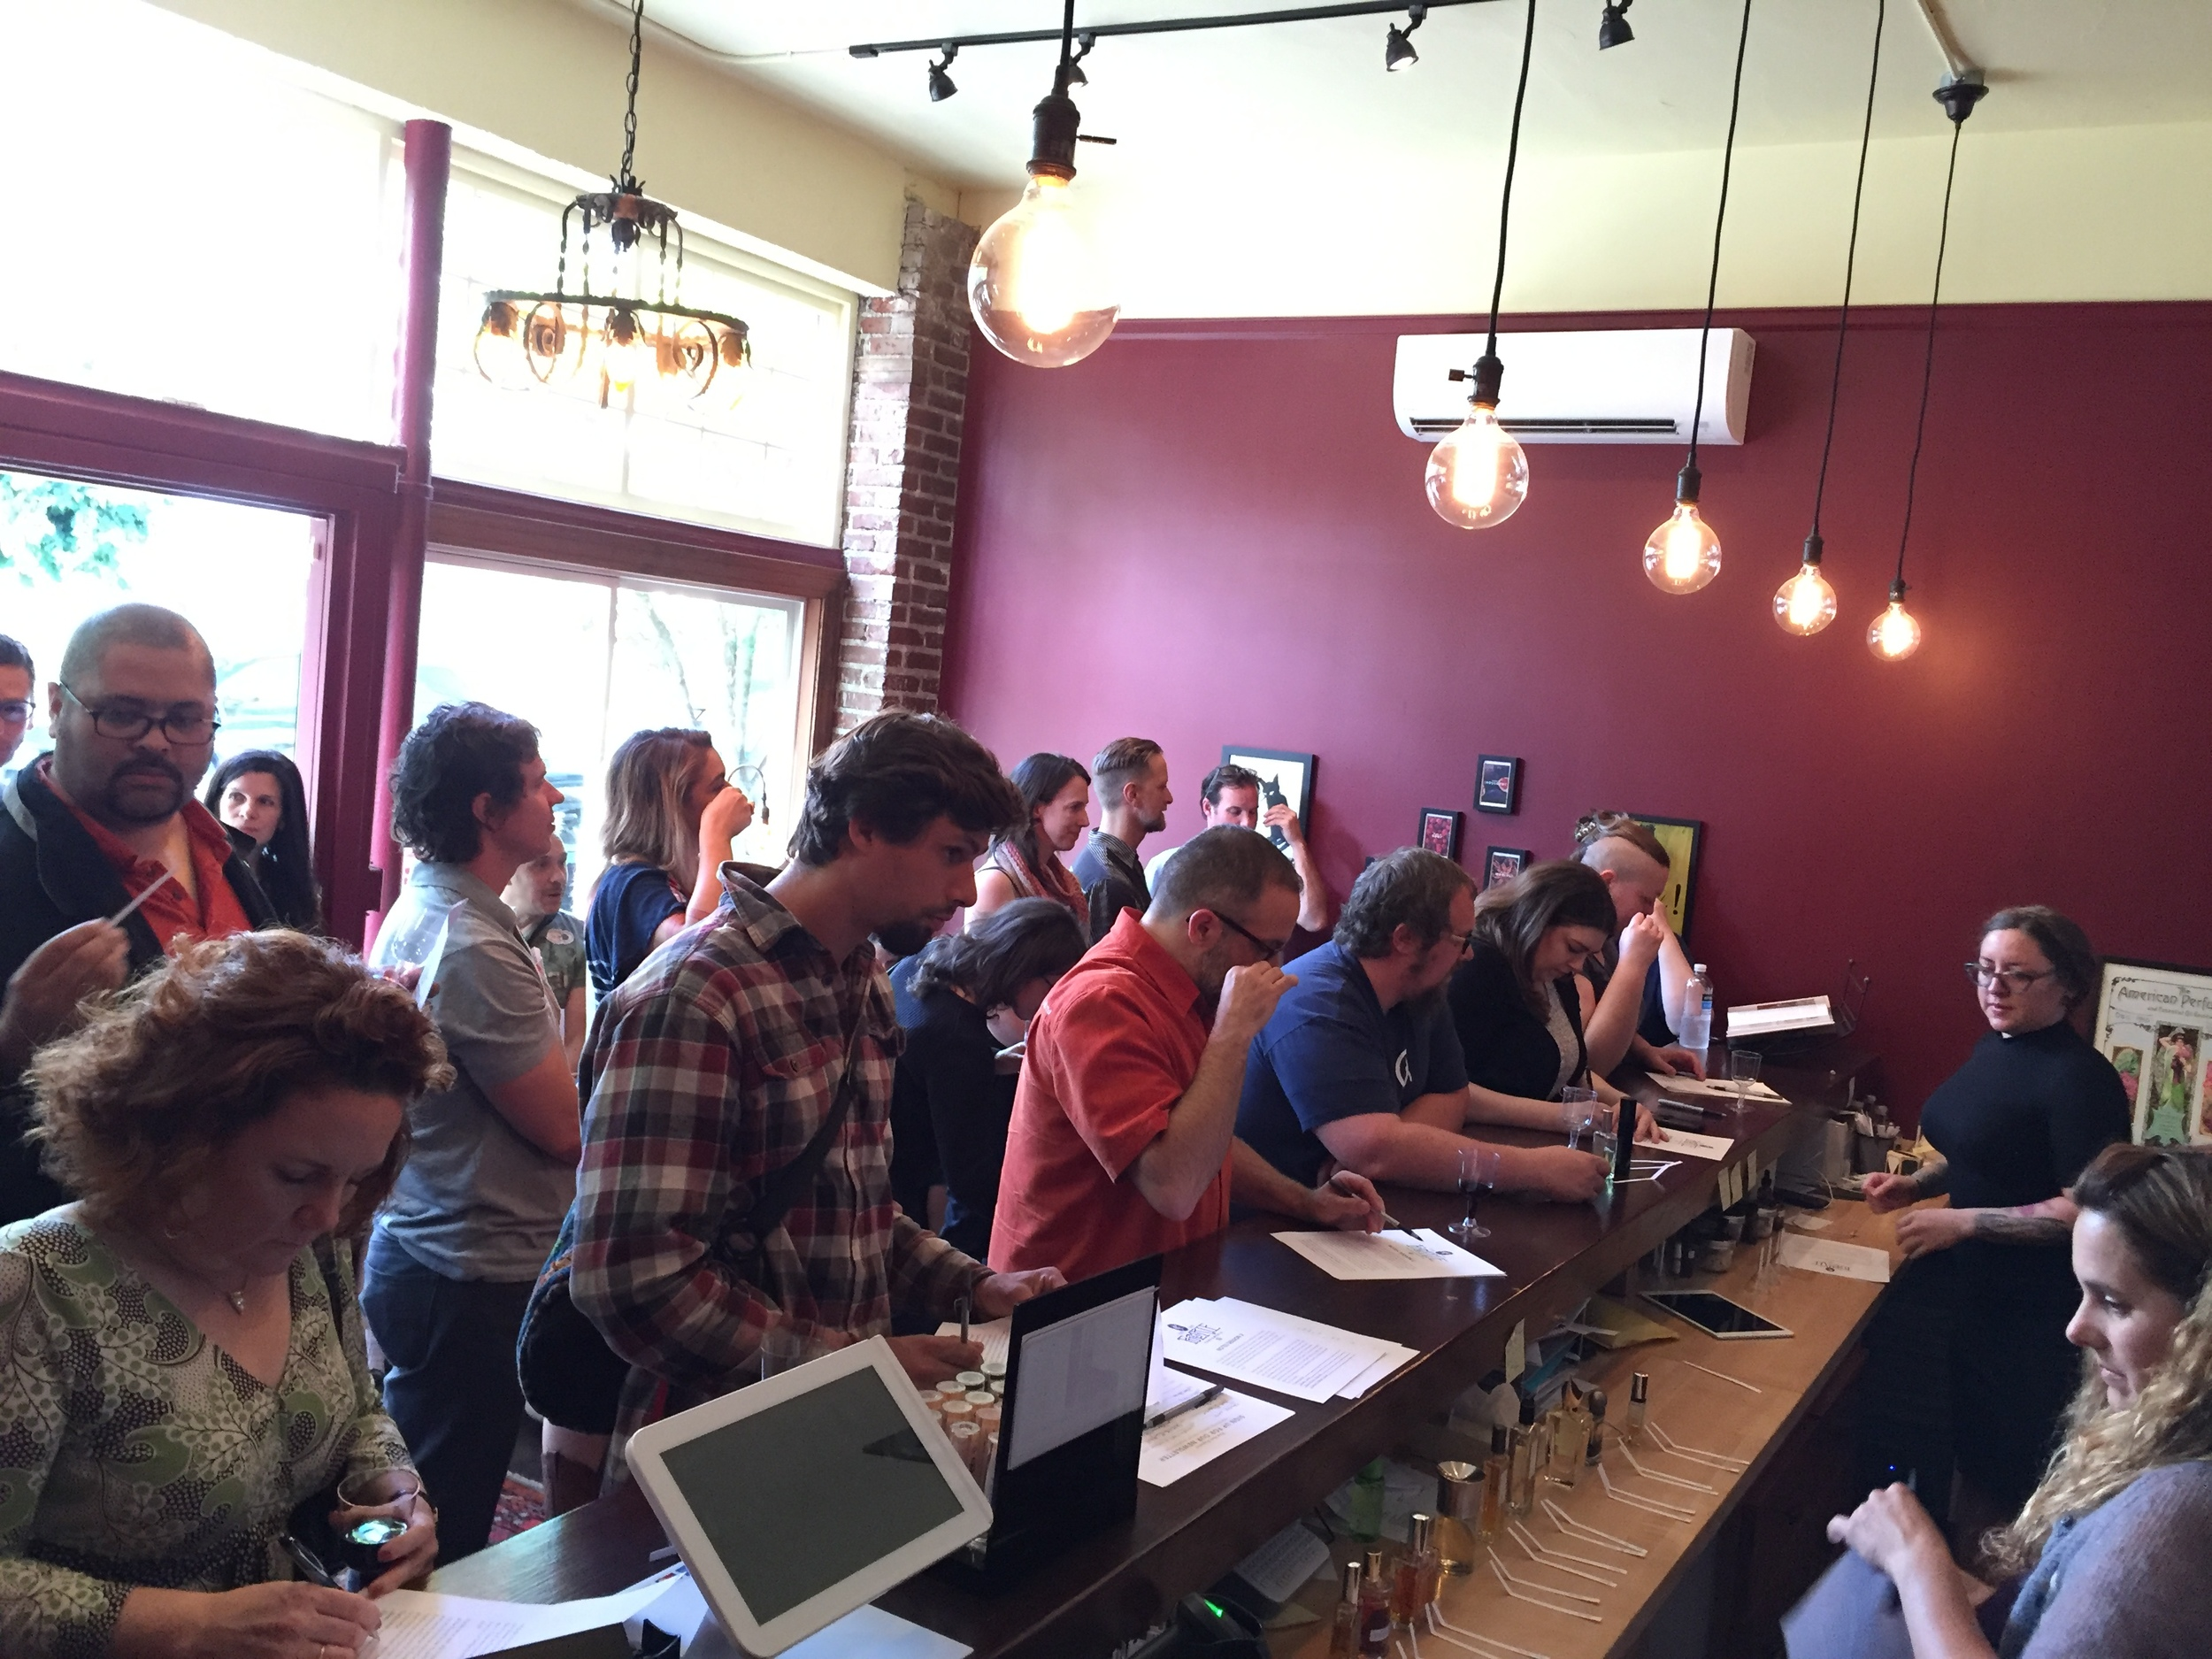 In the foreground attendees record their impressions while Tracy and Nicole look on.